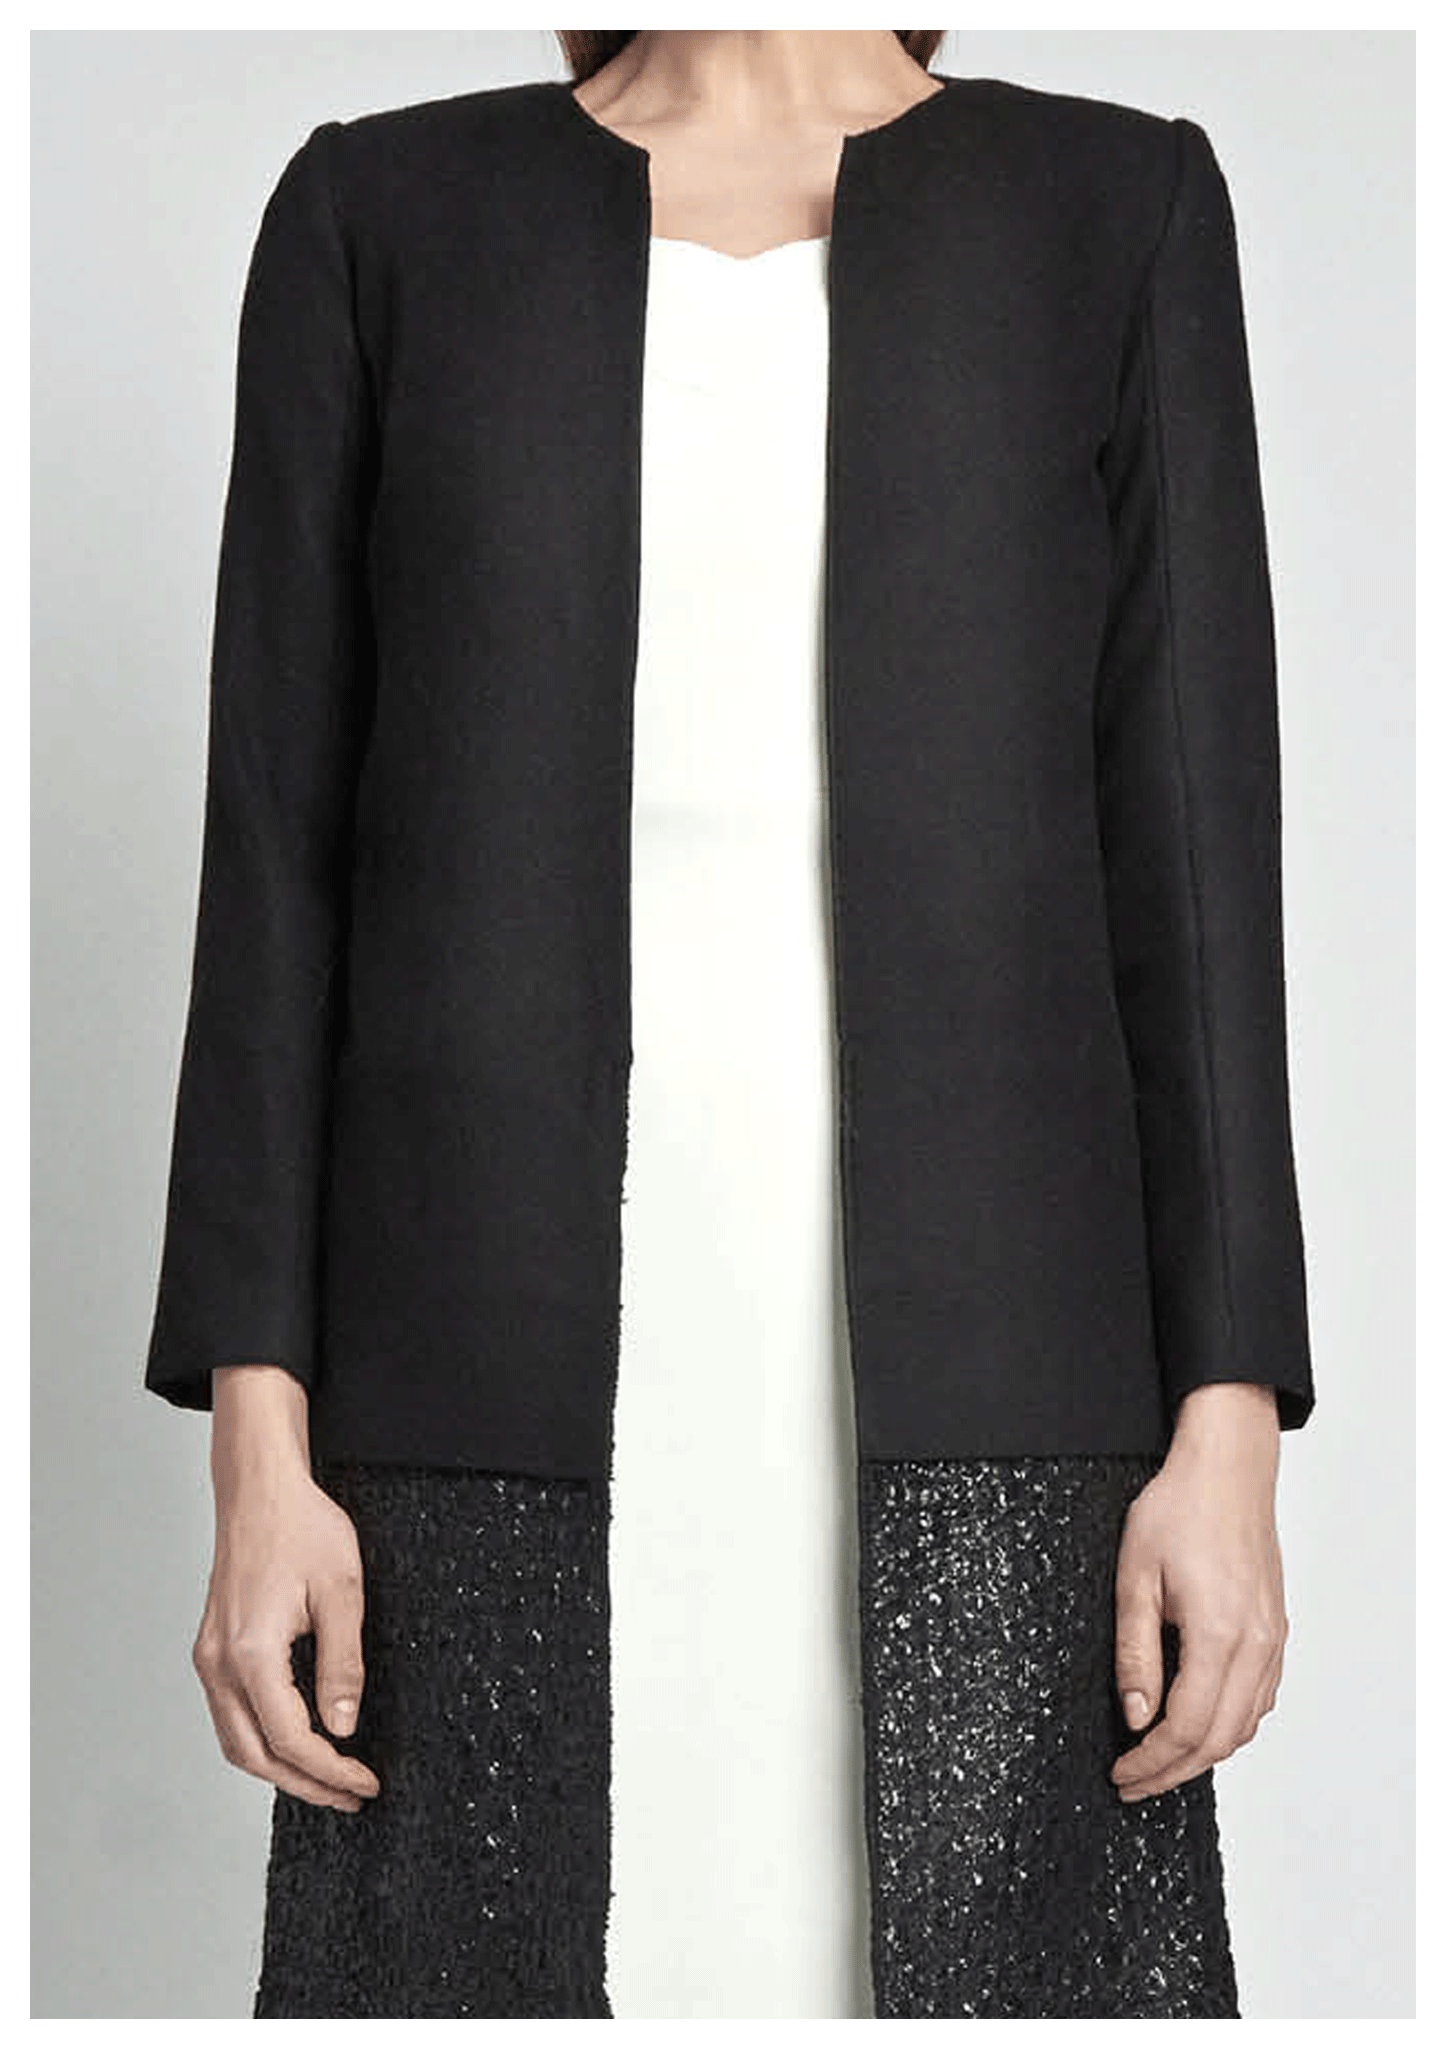 Black, cashmere and wool coat with edge-to-edge hems finish